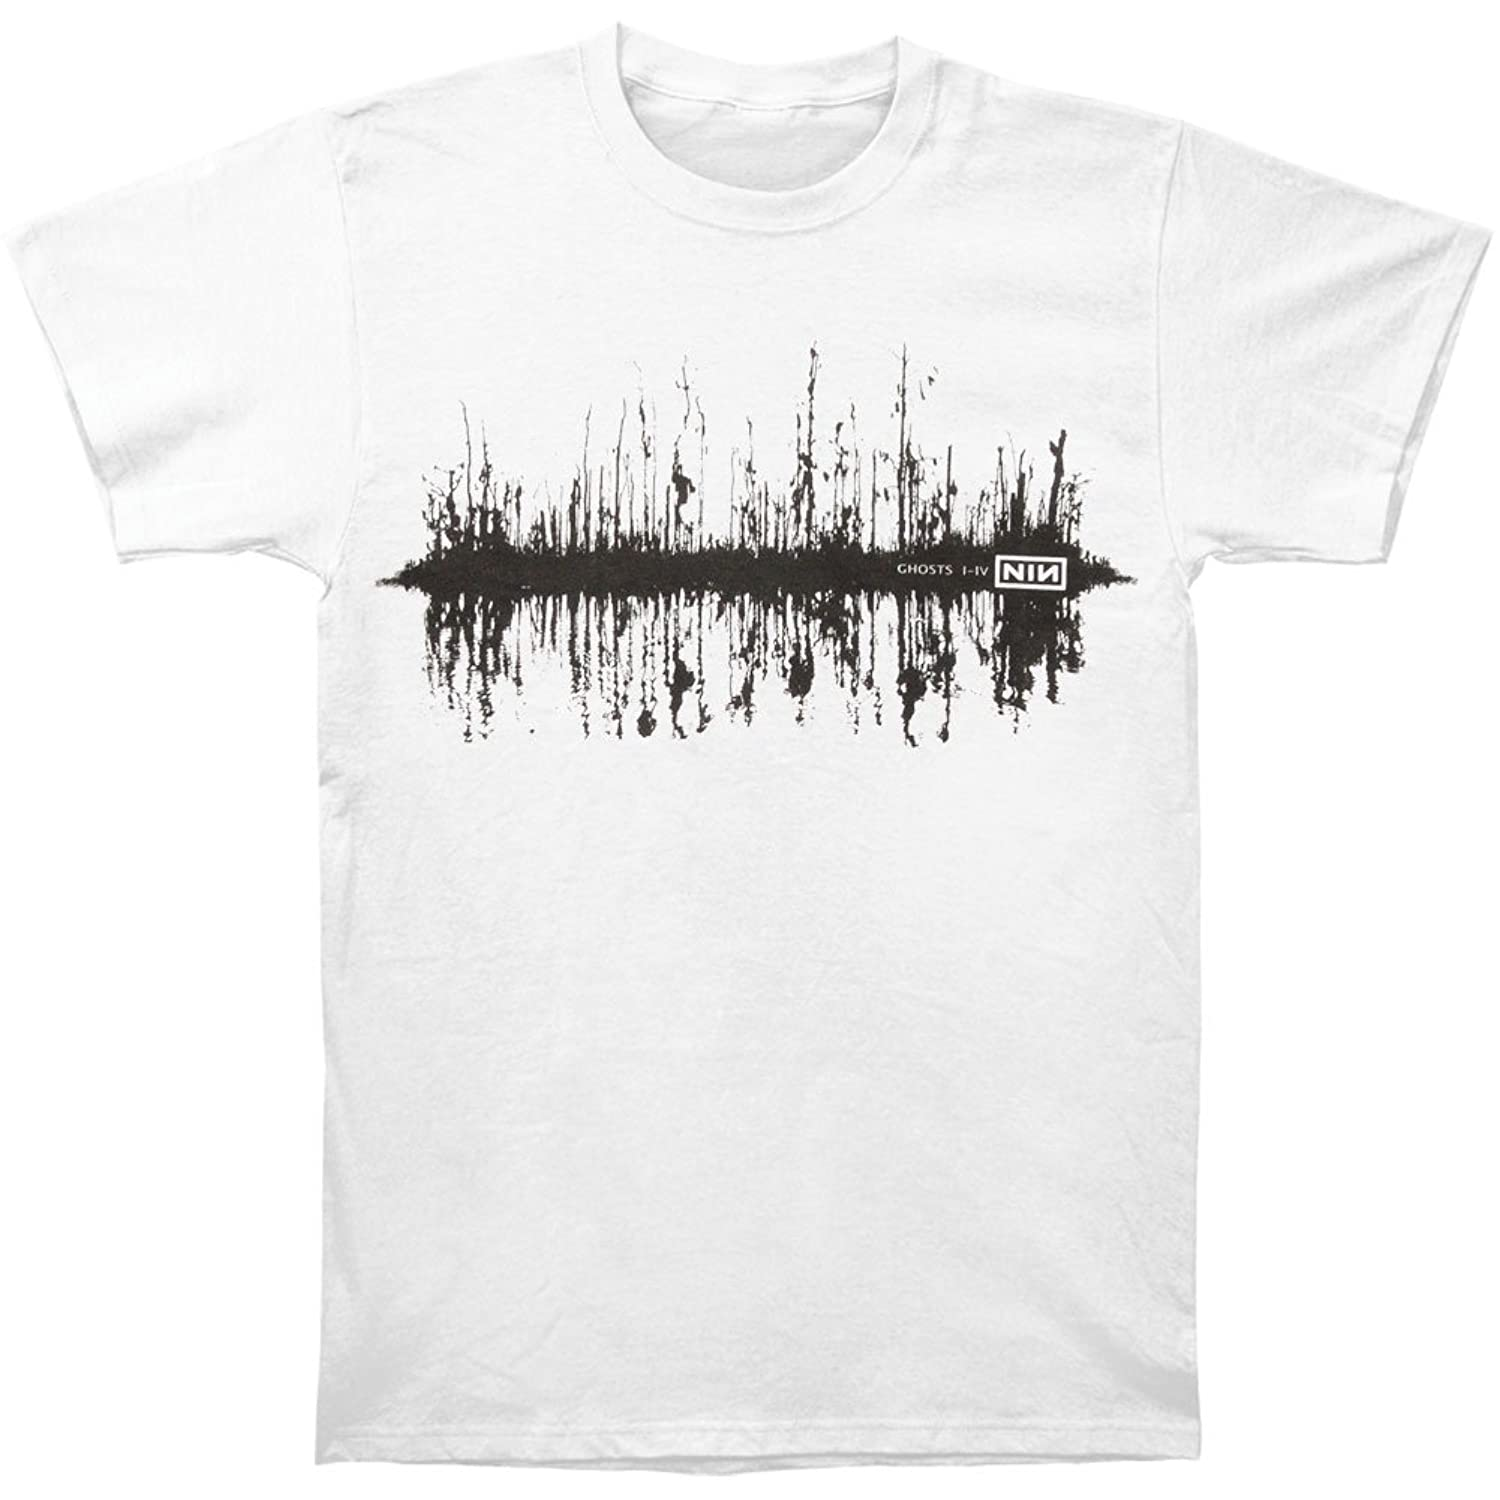 Amazon.com: Nine Inch Nails Men\'s Ghost Trees T-shirt White: Clothing